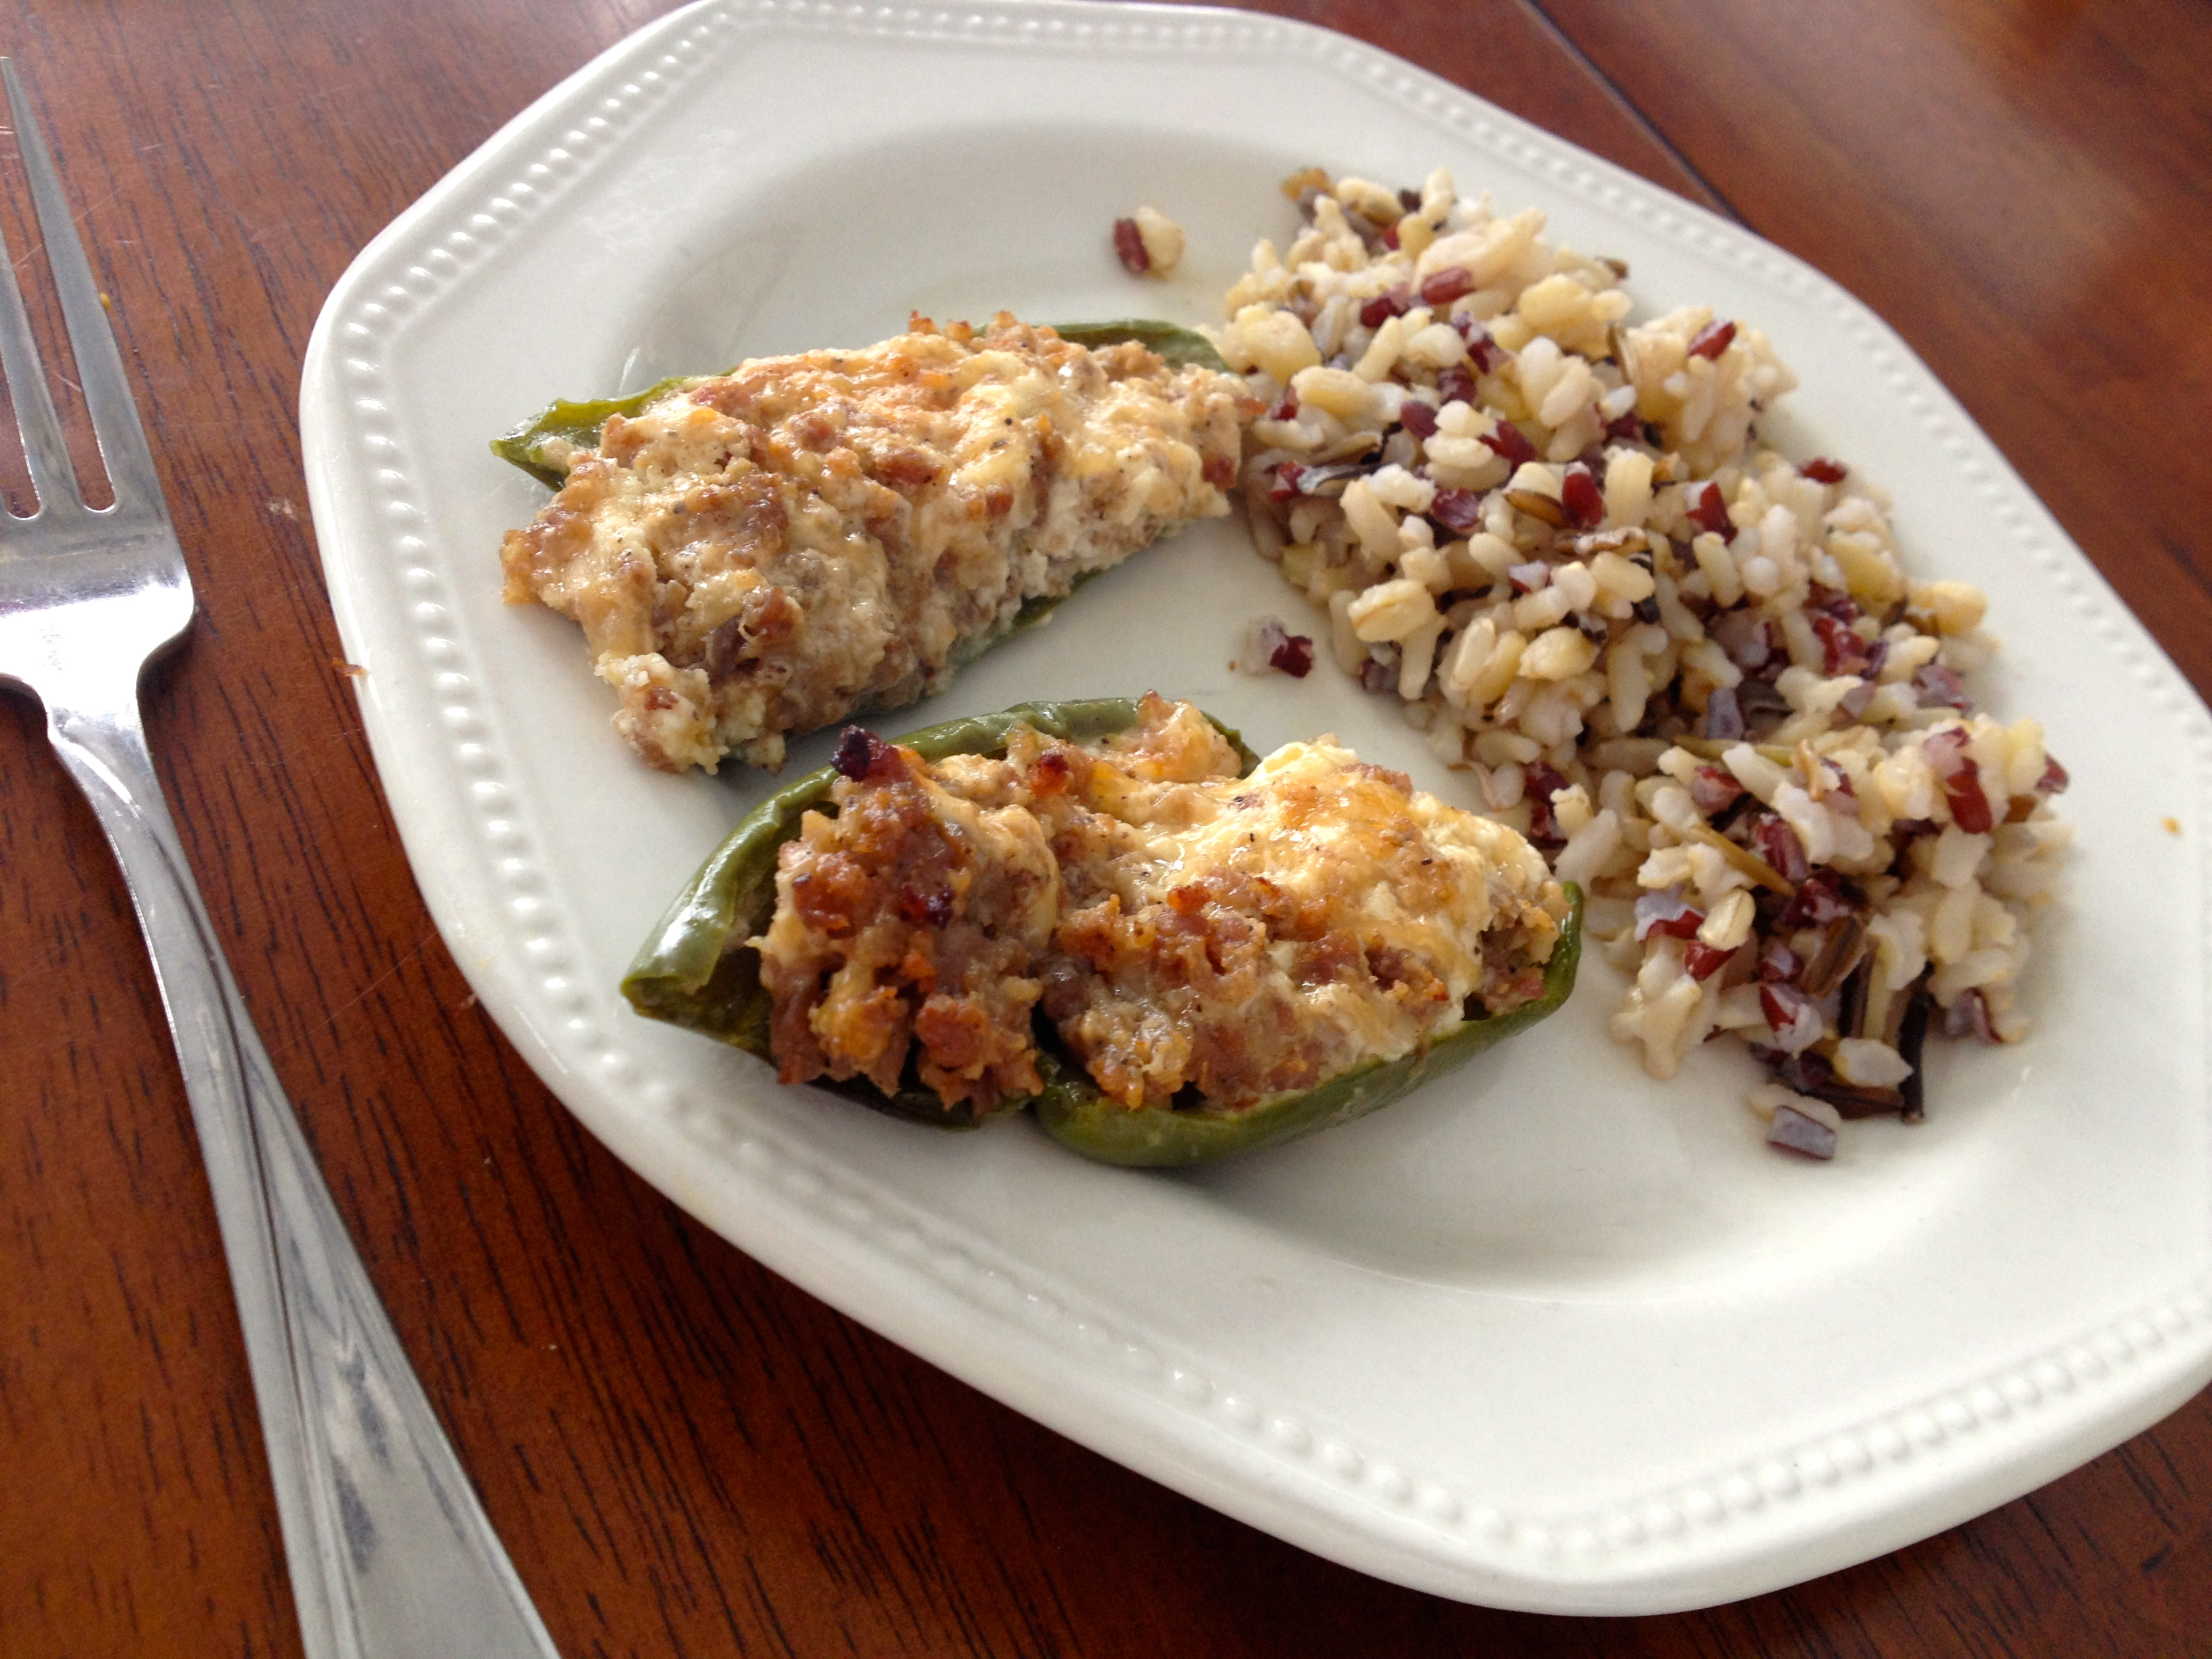 12:28-lunch-peppers-wild-rice